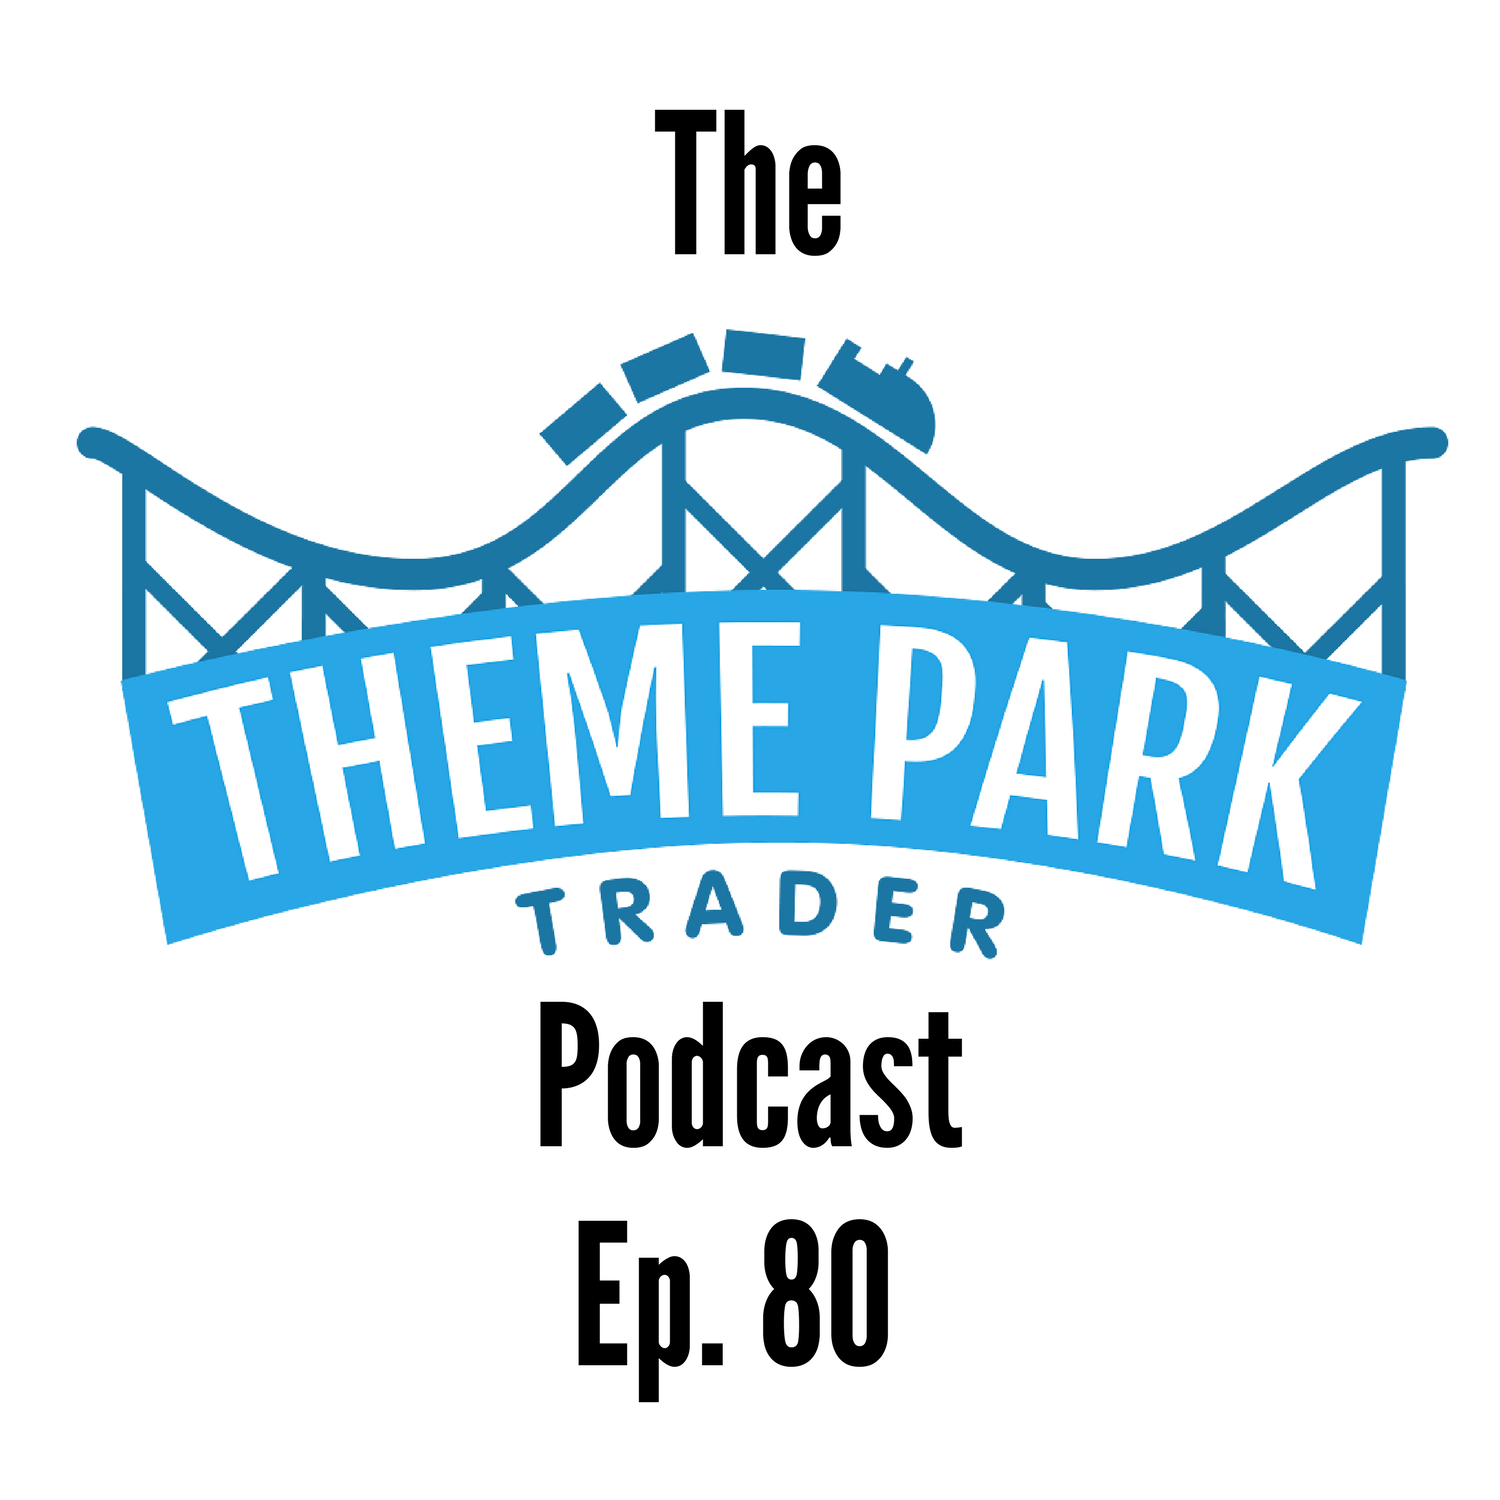 Episode 80 - Epcot FastPass+ Recommendations, Marty Sklar Tribute + This weeks news!